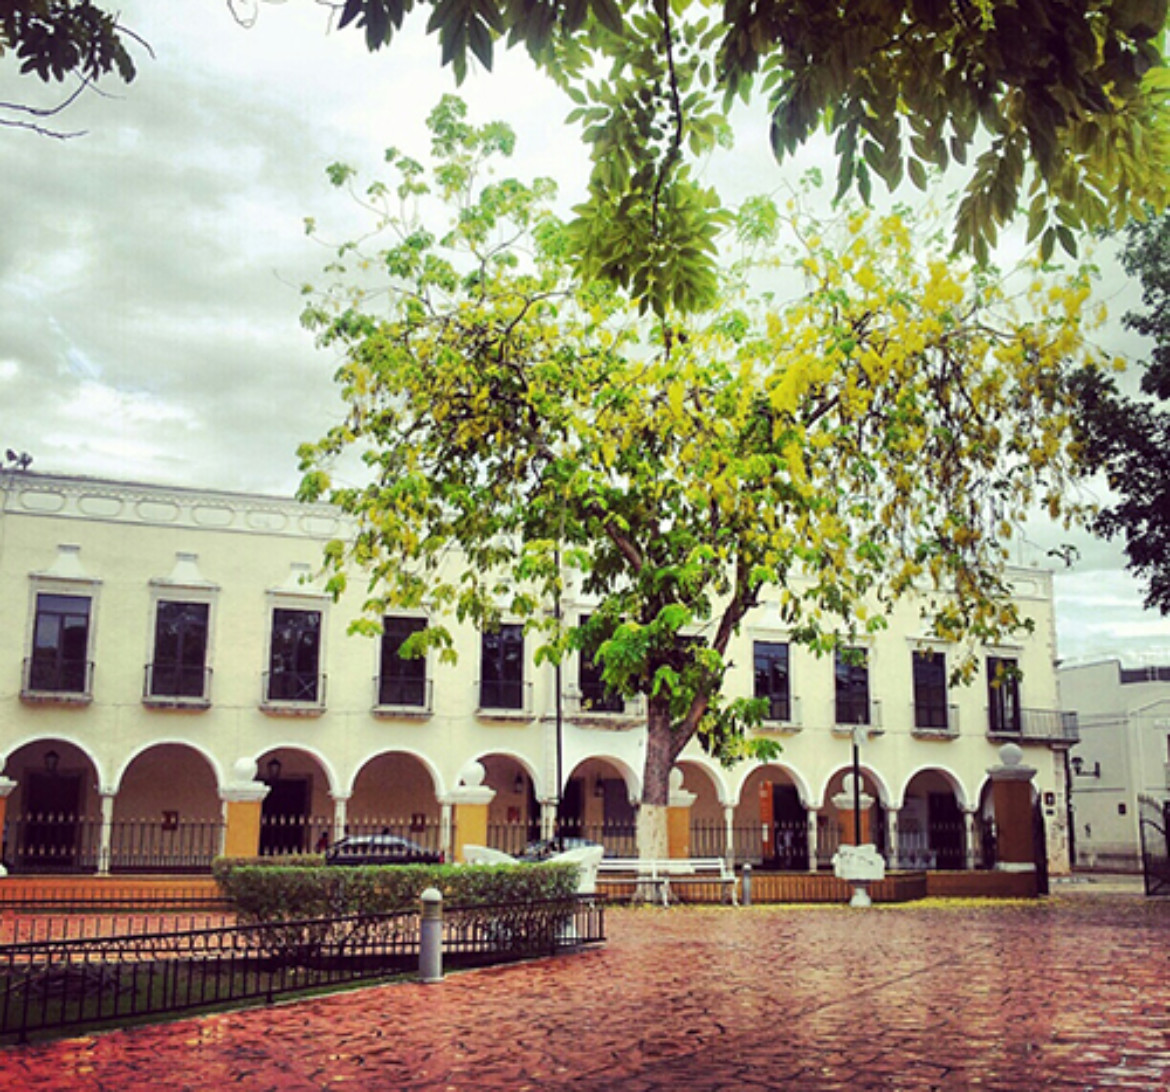 valledolid square